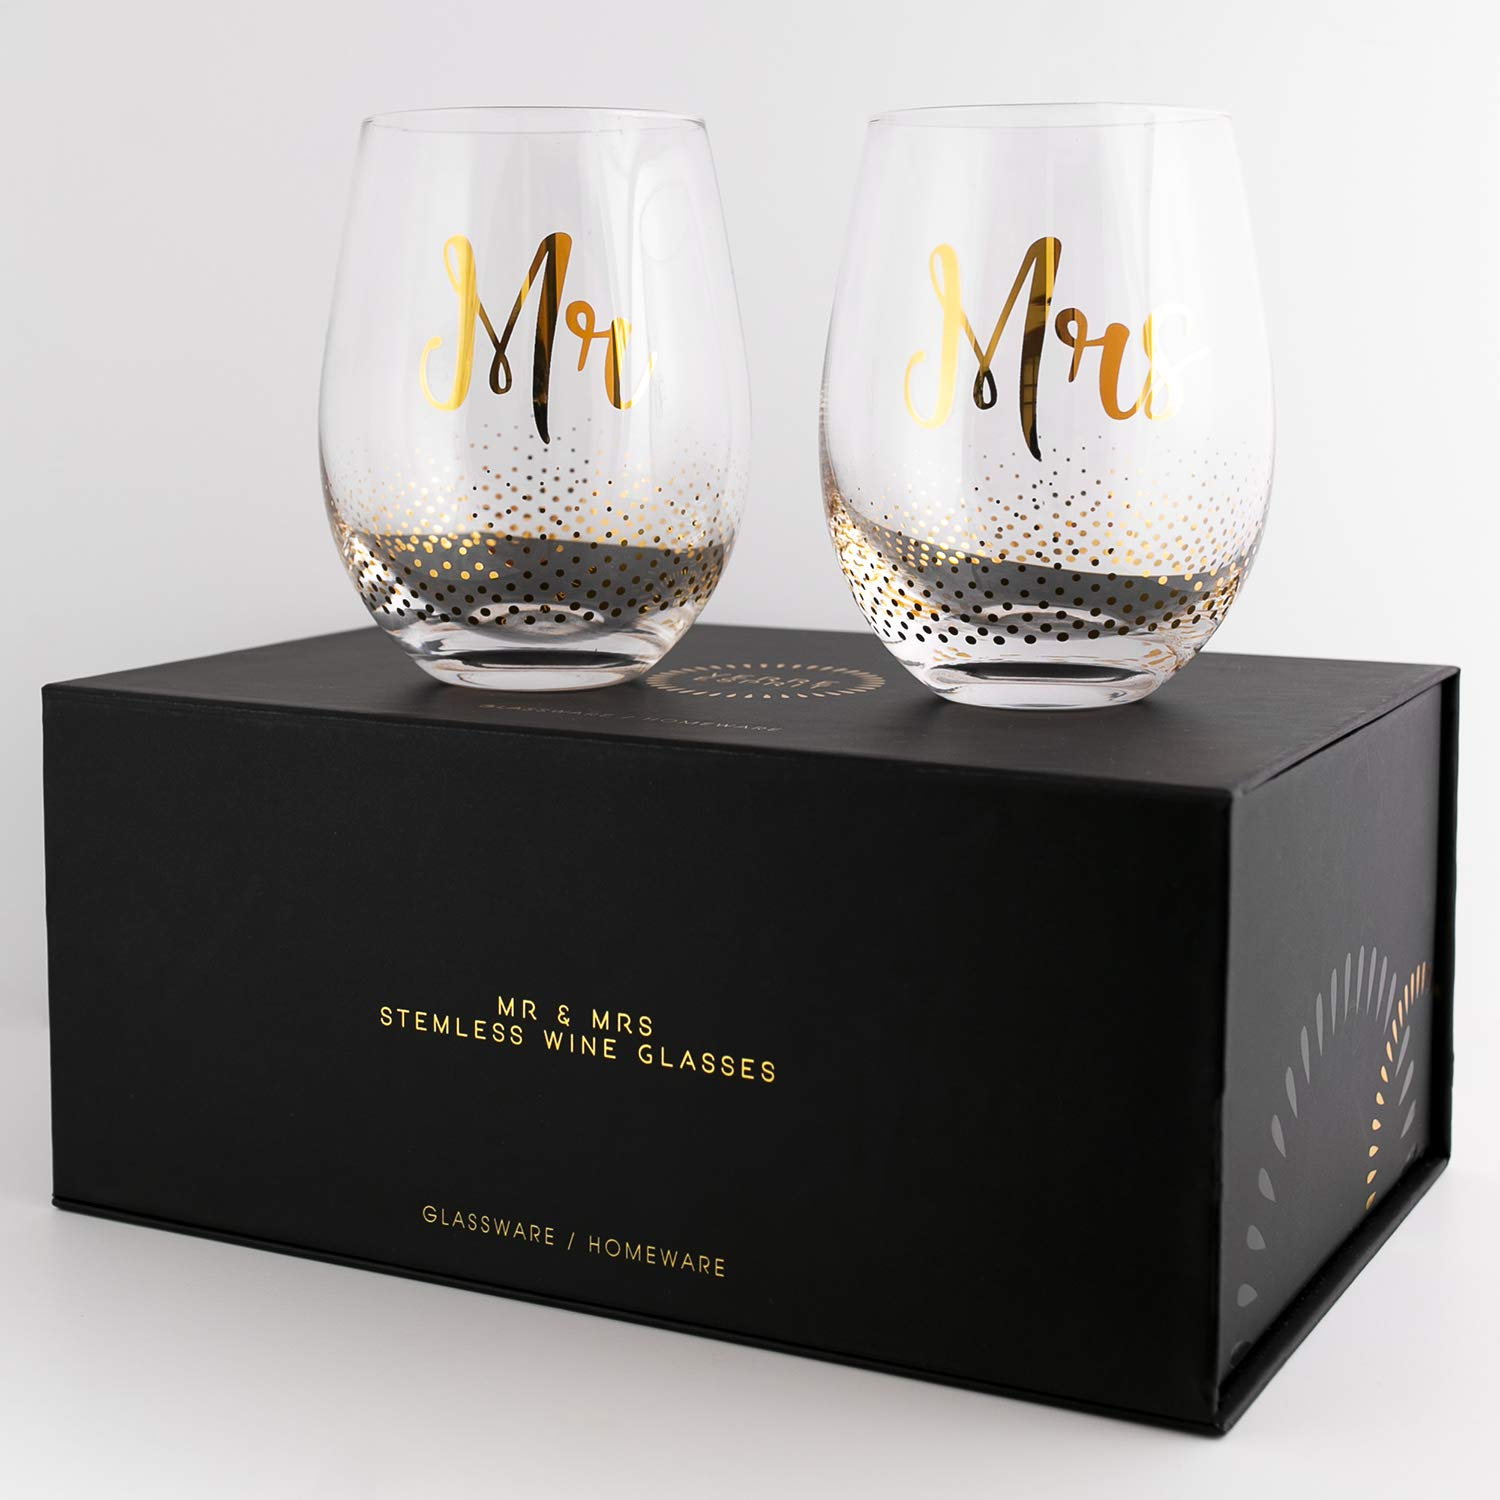 Mr & Mrs Gifts, set of 2 Crystal stemless wine glasses, with beautiful gift box, Perfect Engagement Gift, Wedding gift, Anniversary or Couples gift. by Verre Esprit (Image #7)